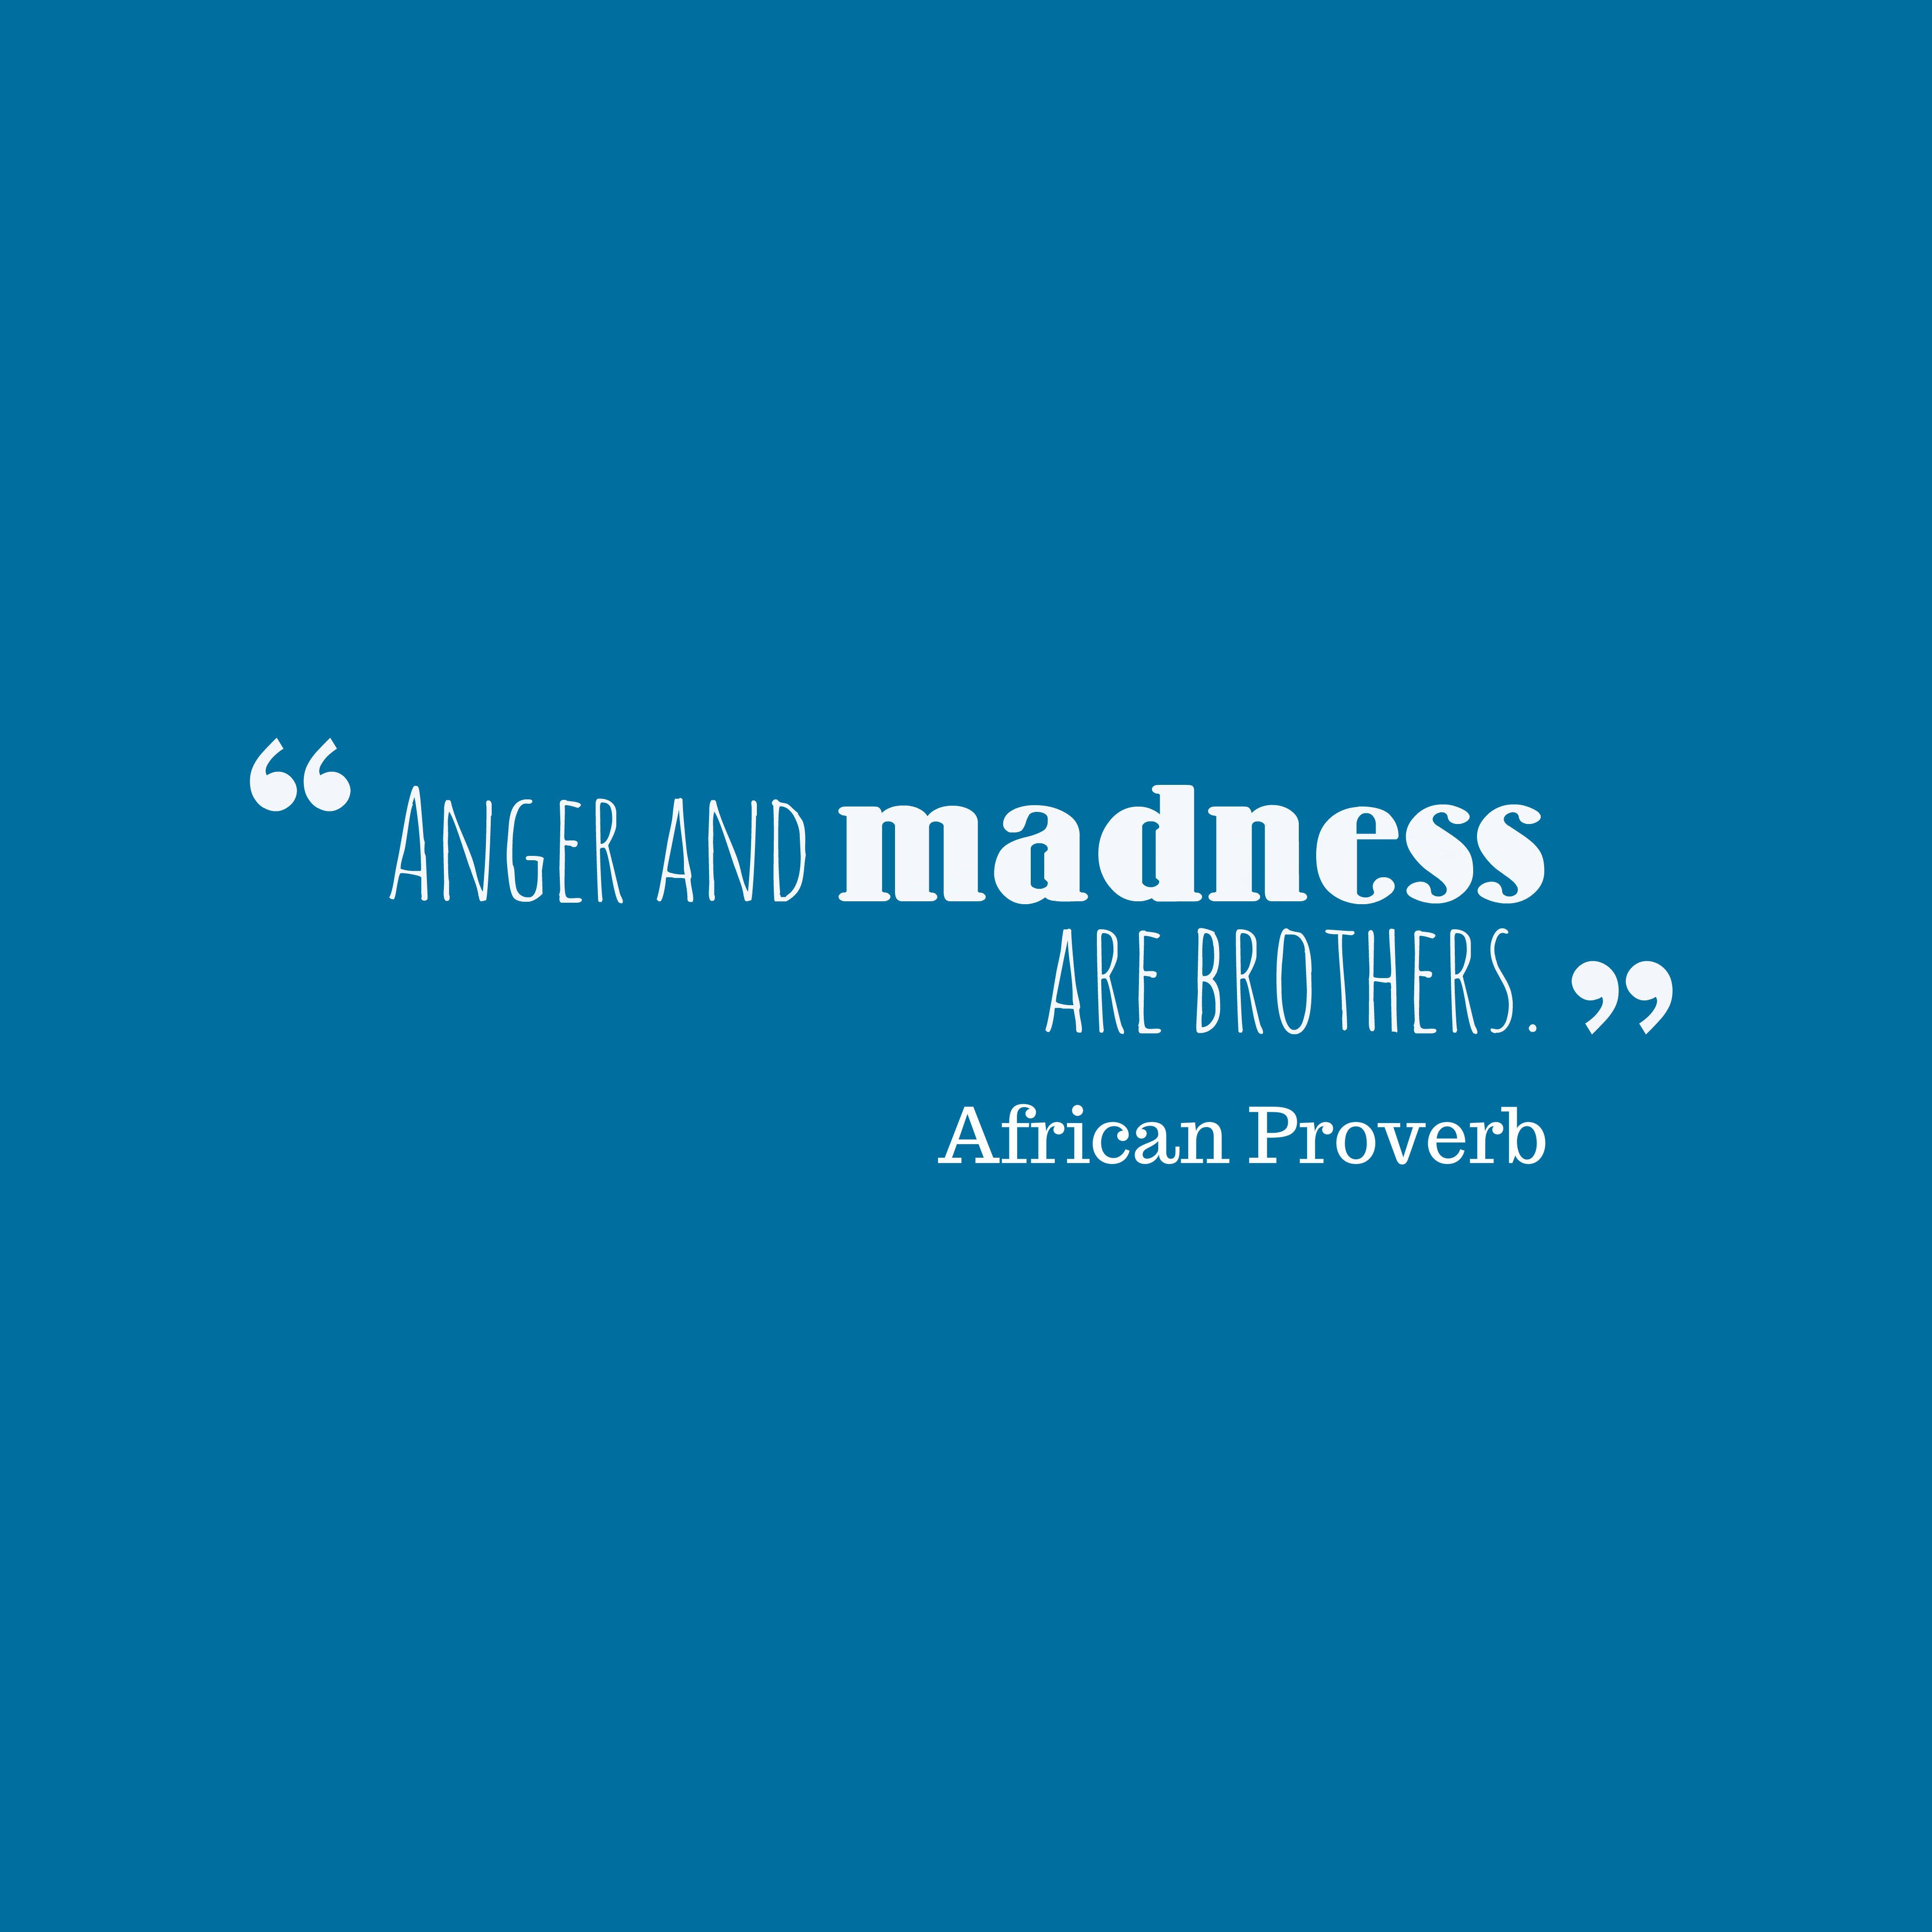 Quotes About Anger And Rage: 201 Best Anger Quotes Images